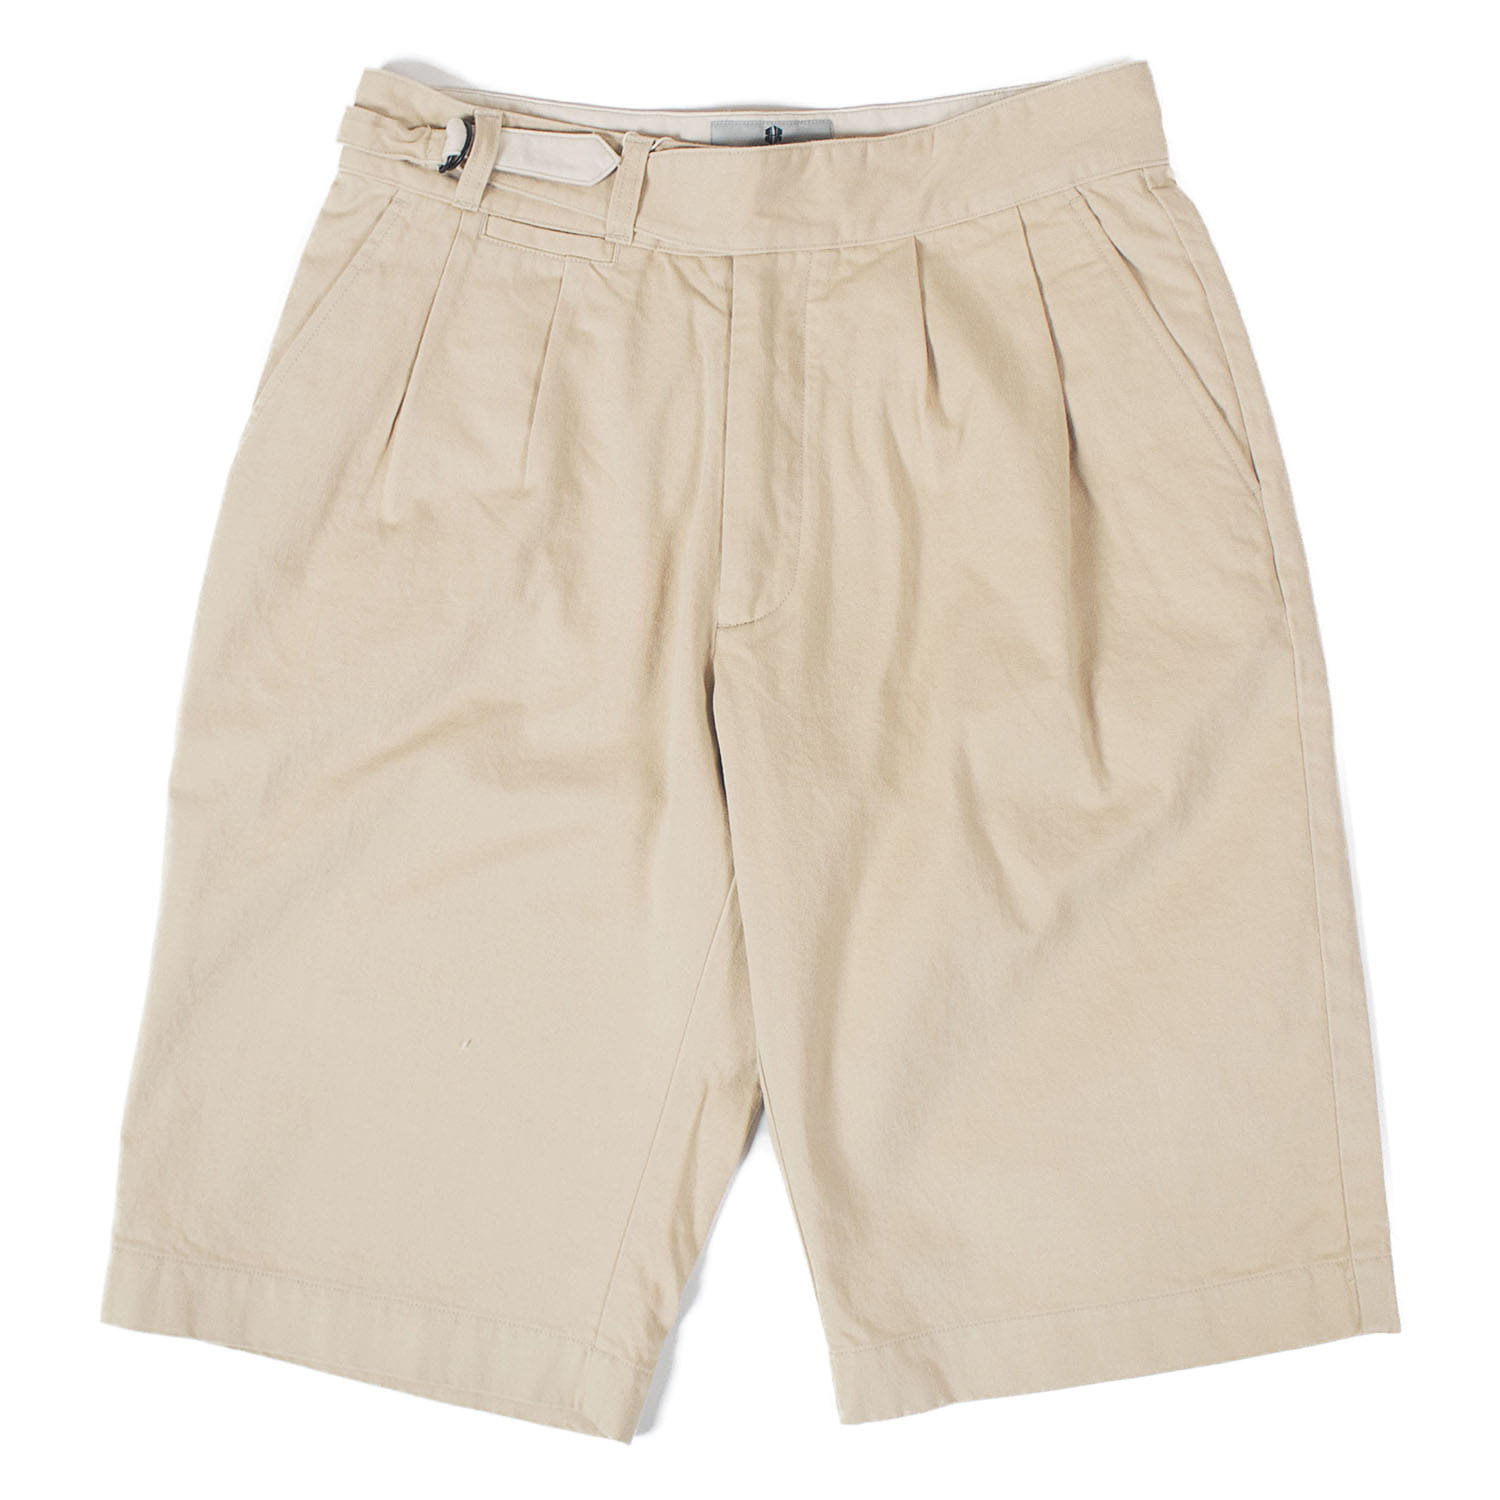 BHR Summer Half pants (Beige)